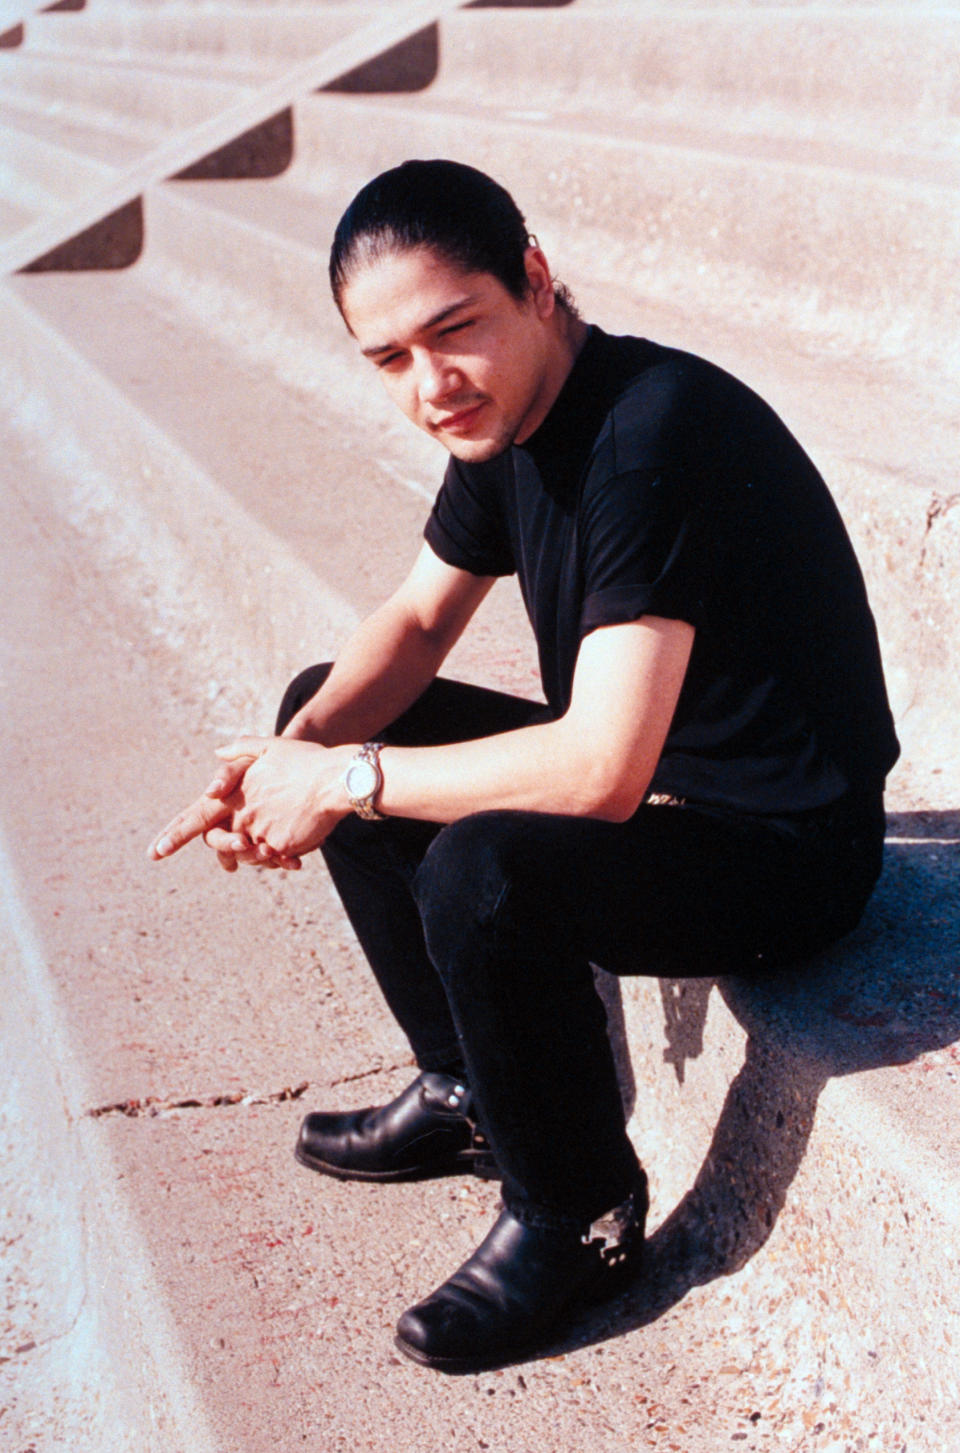 Chris Perez, husband of slain tejano singer Selena, posing outside on concrete steps.  (Photo by Barbara Laing/The LIFE Images Collection via Getty Images/Getty Images)